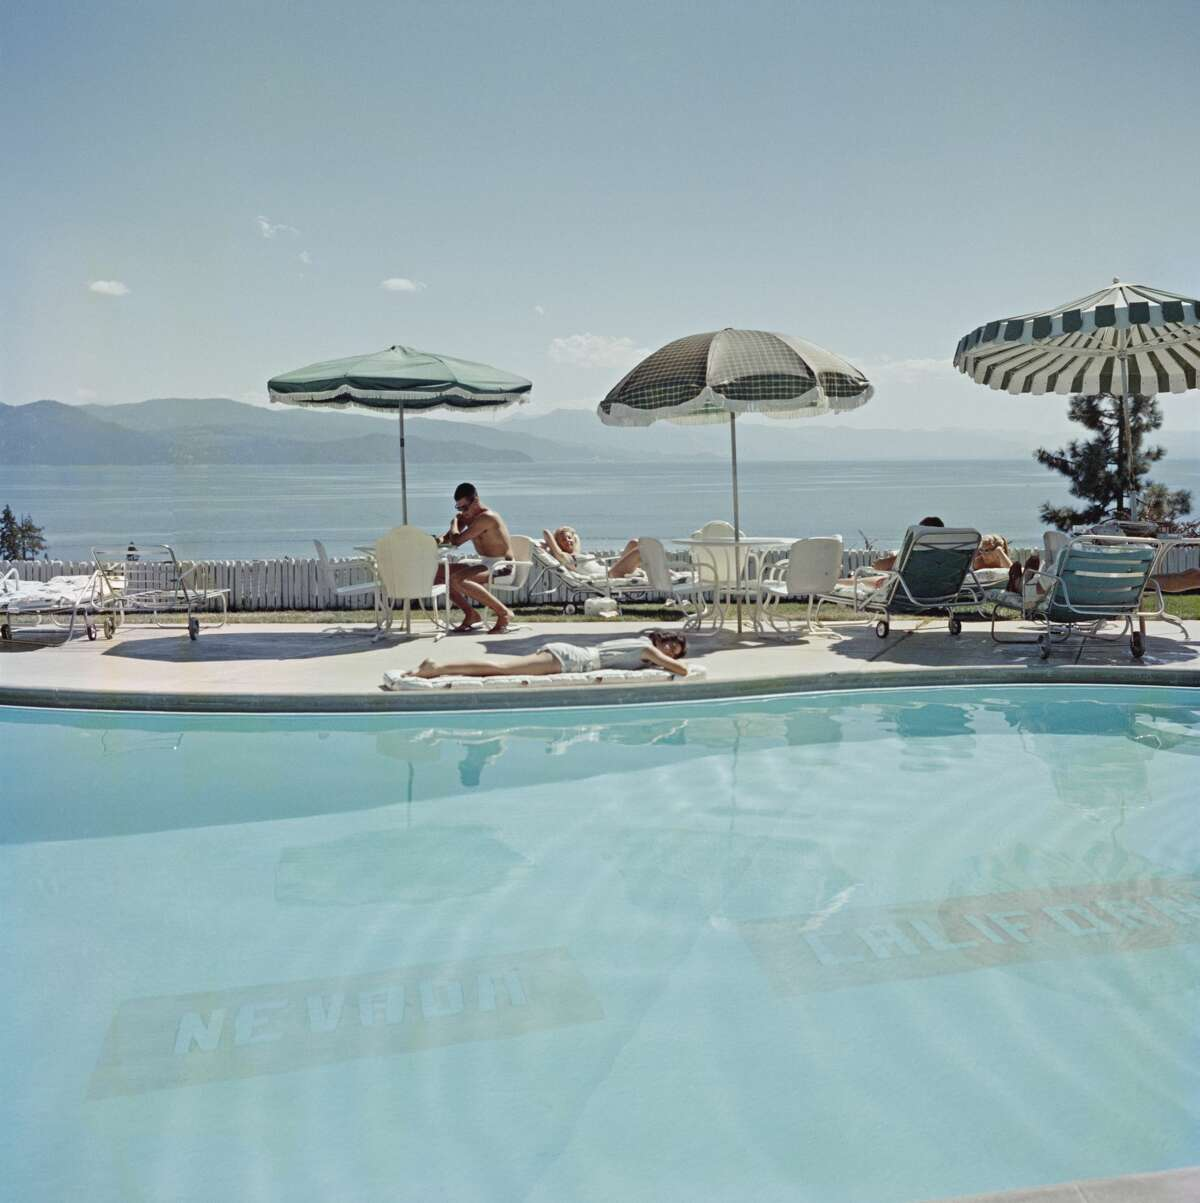 A swimming pool at the Cal Neva Lodge on the shore of Lake Tahoe in 1959. The Cal Neva Lodge straddles the border between Nevada and California and the line on the bottom of the pool marks the state boundary.